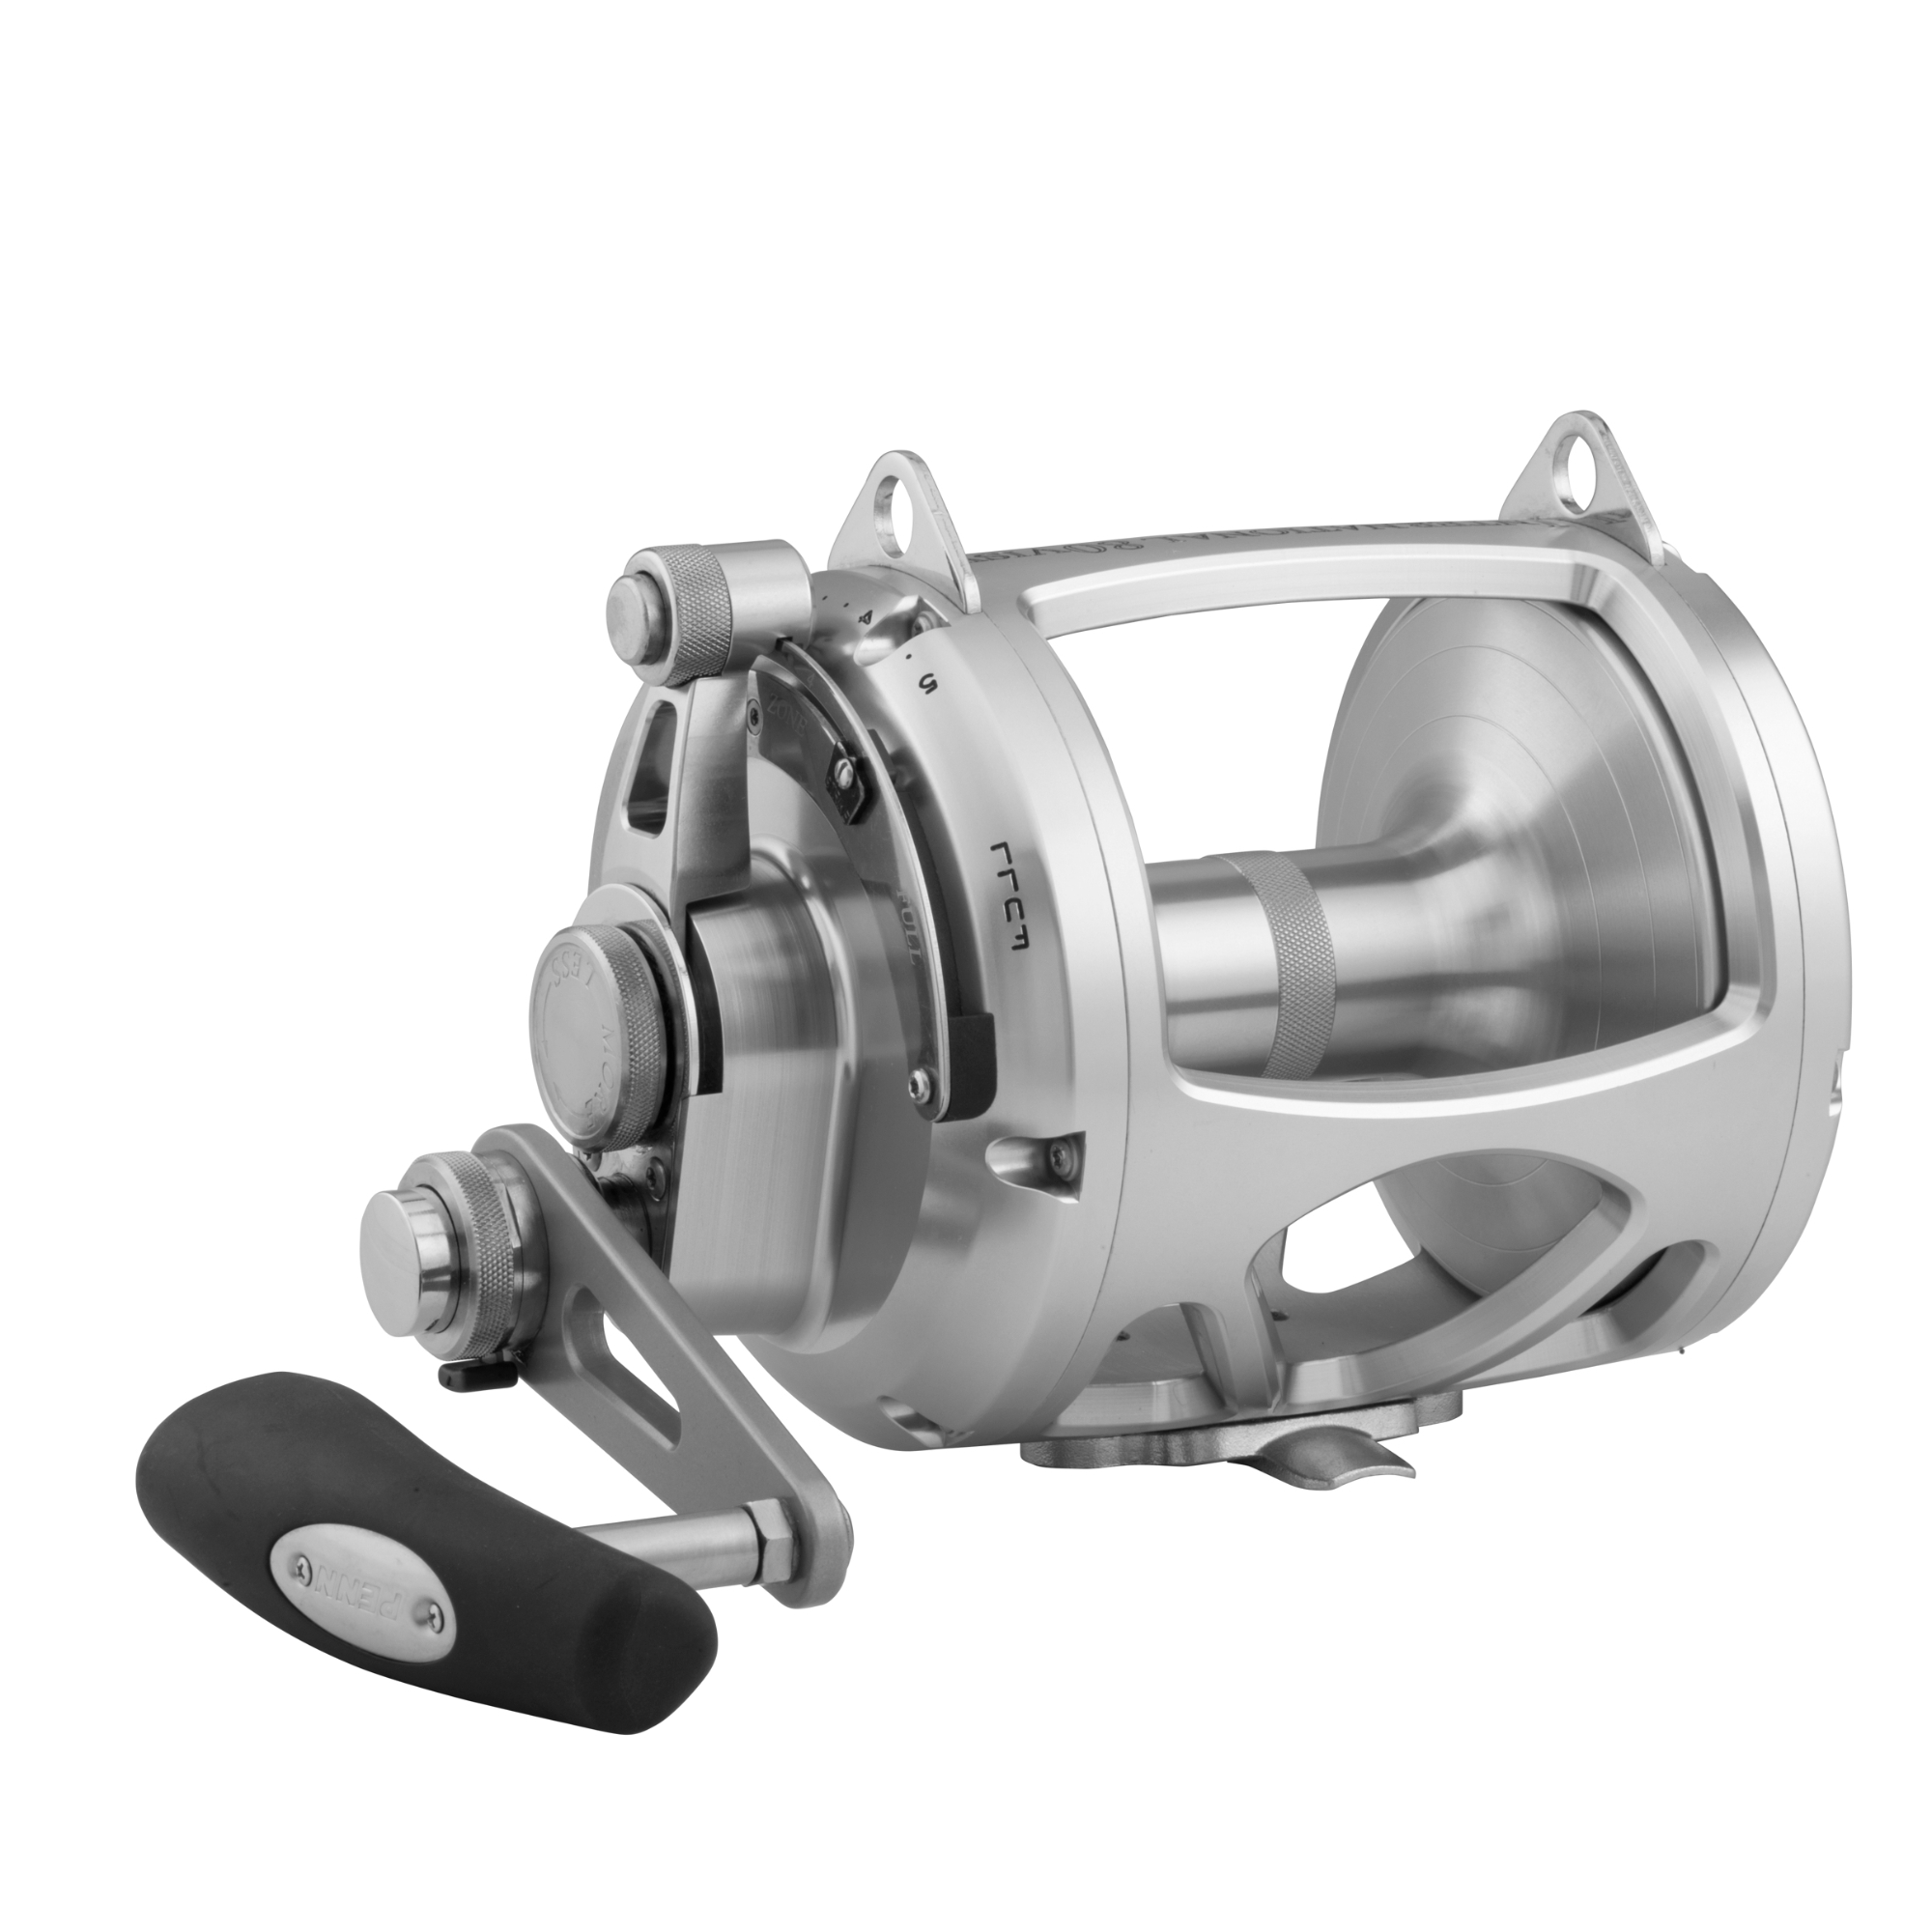 Penn INT80VISWS International VI Silver Reel